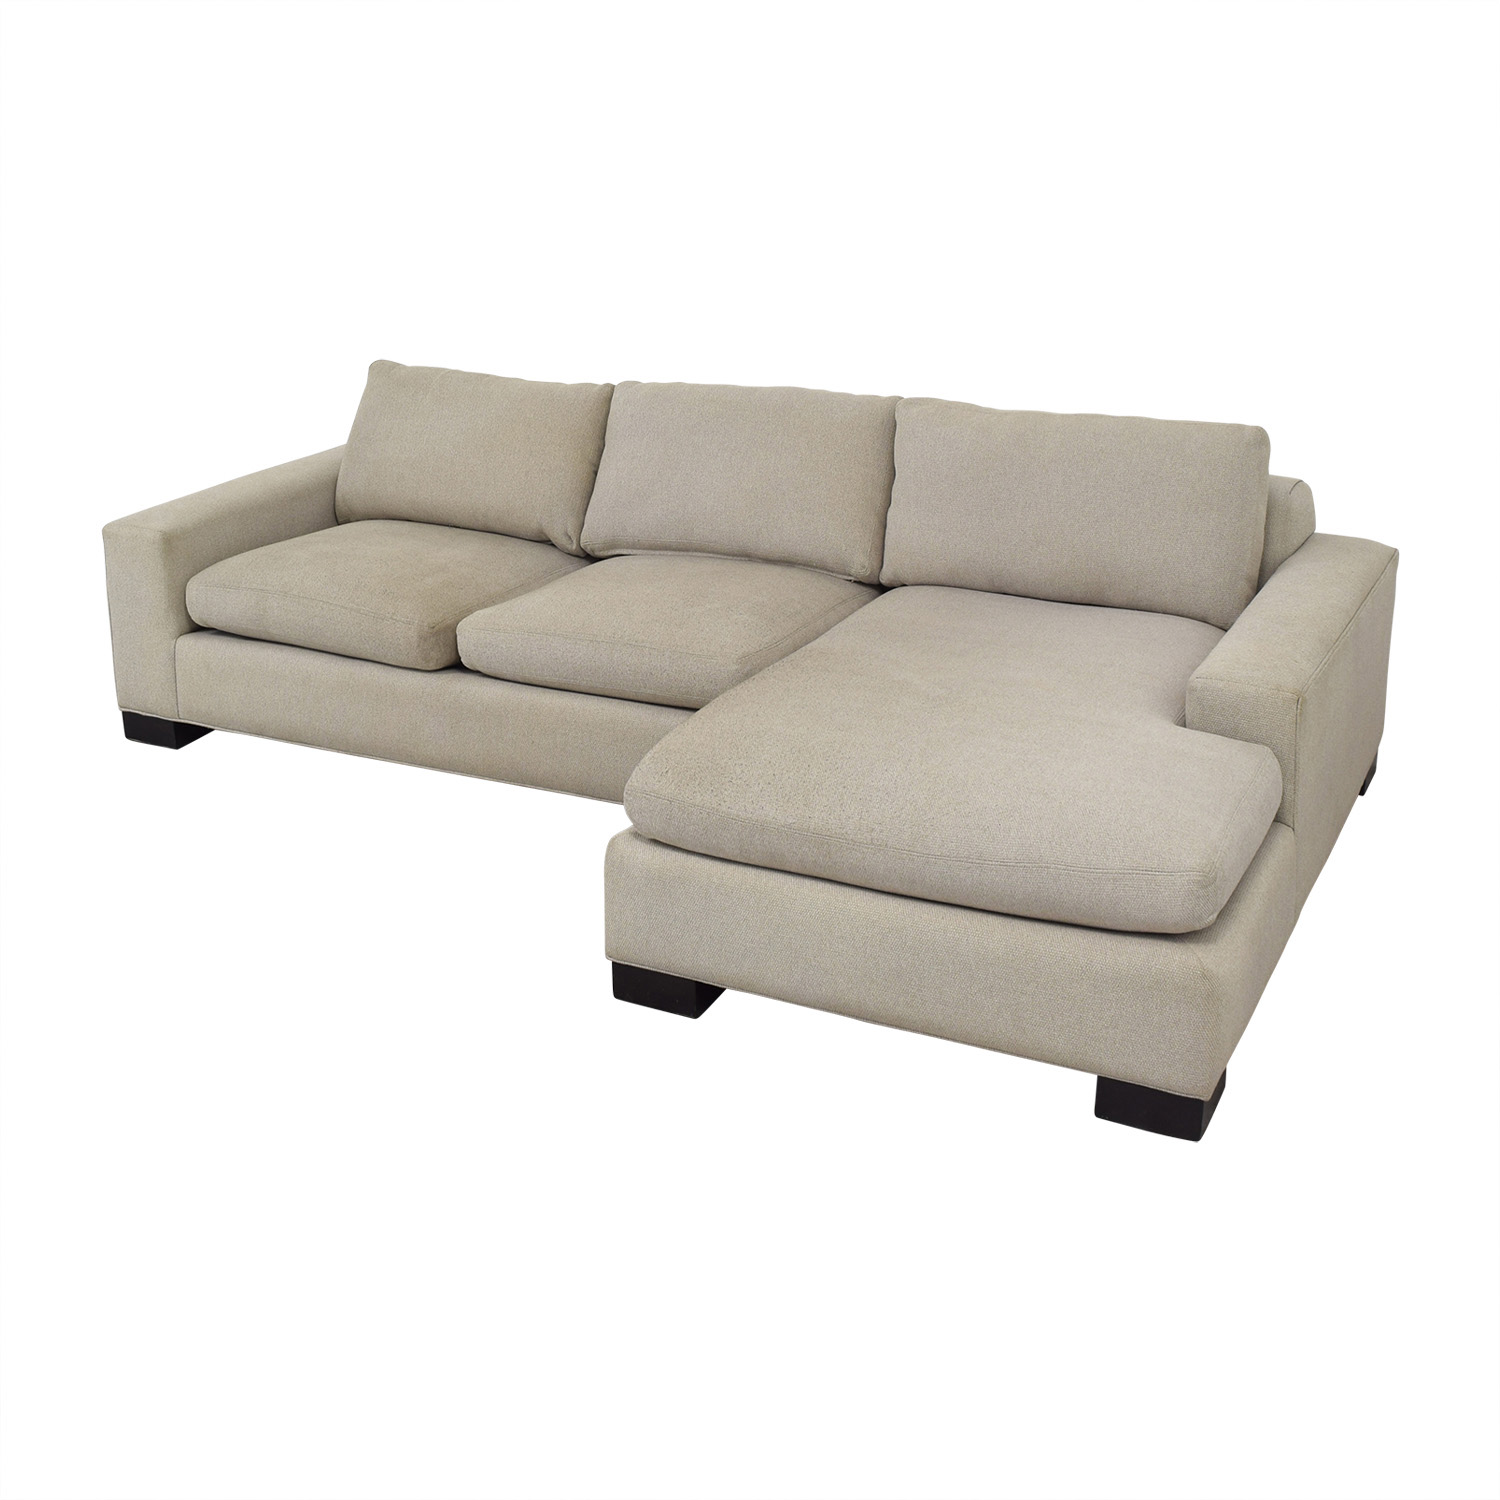 37% OFF - Room & Board Room & Board Chaise Sectional Sofa / Sofas